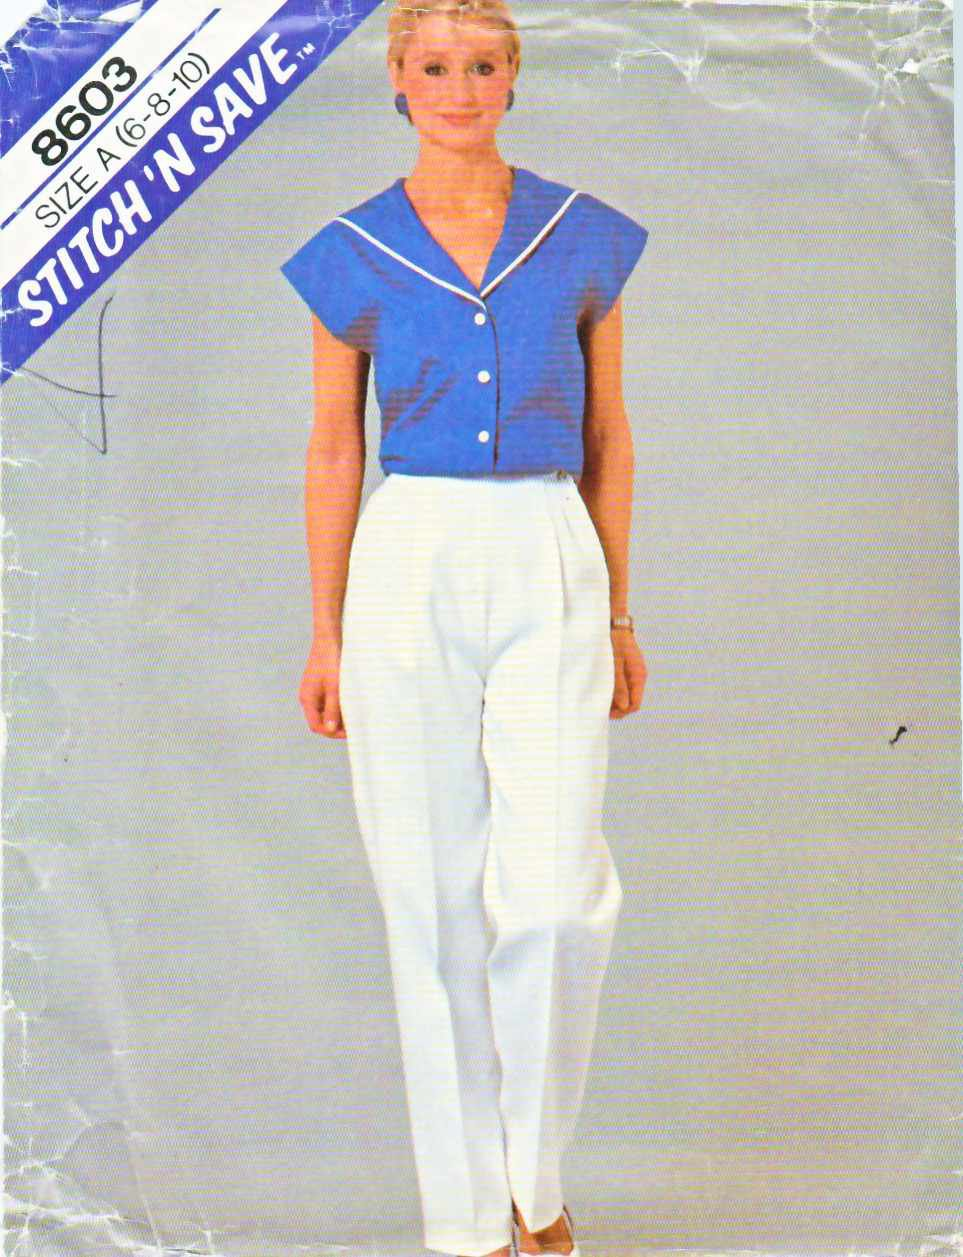 McCall's Sewing Pattern 8603 Misses Size 6-10 Buttoned Front Sailor Collar Top Front Pleat Pants